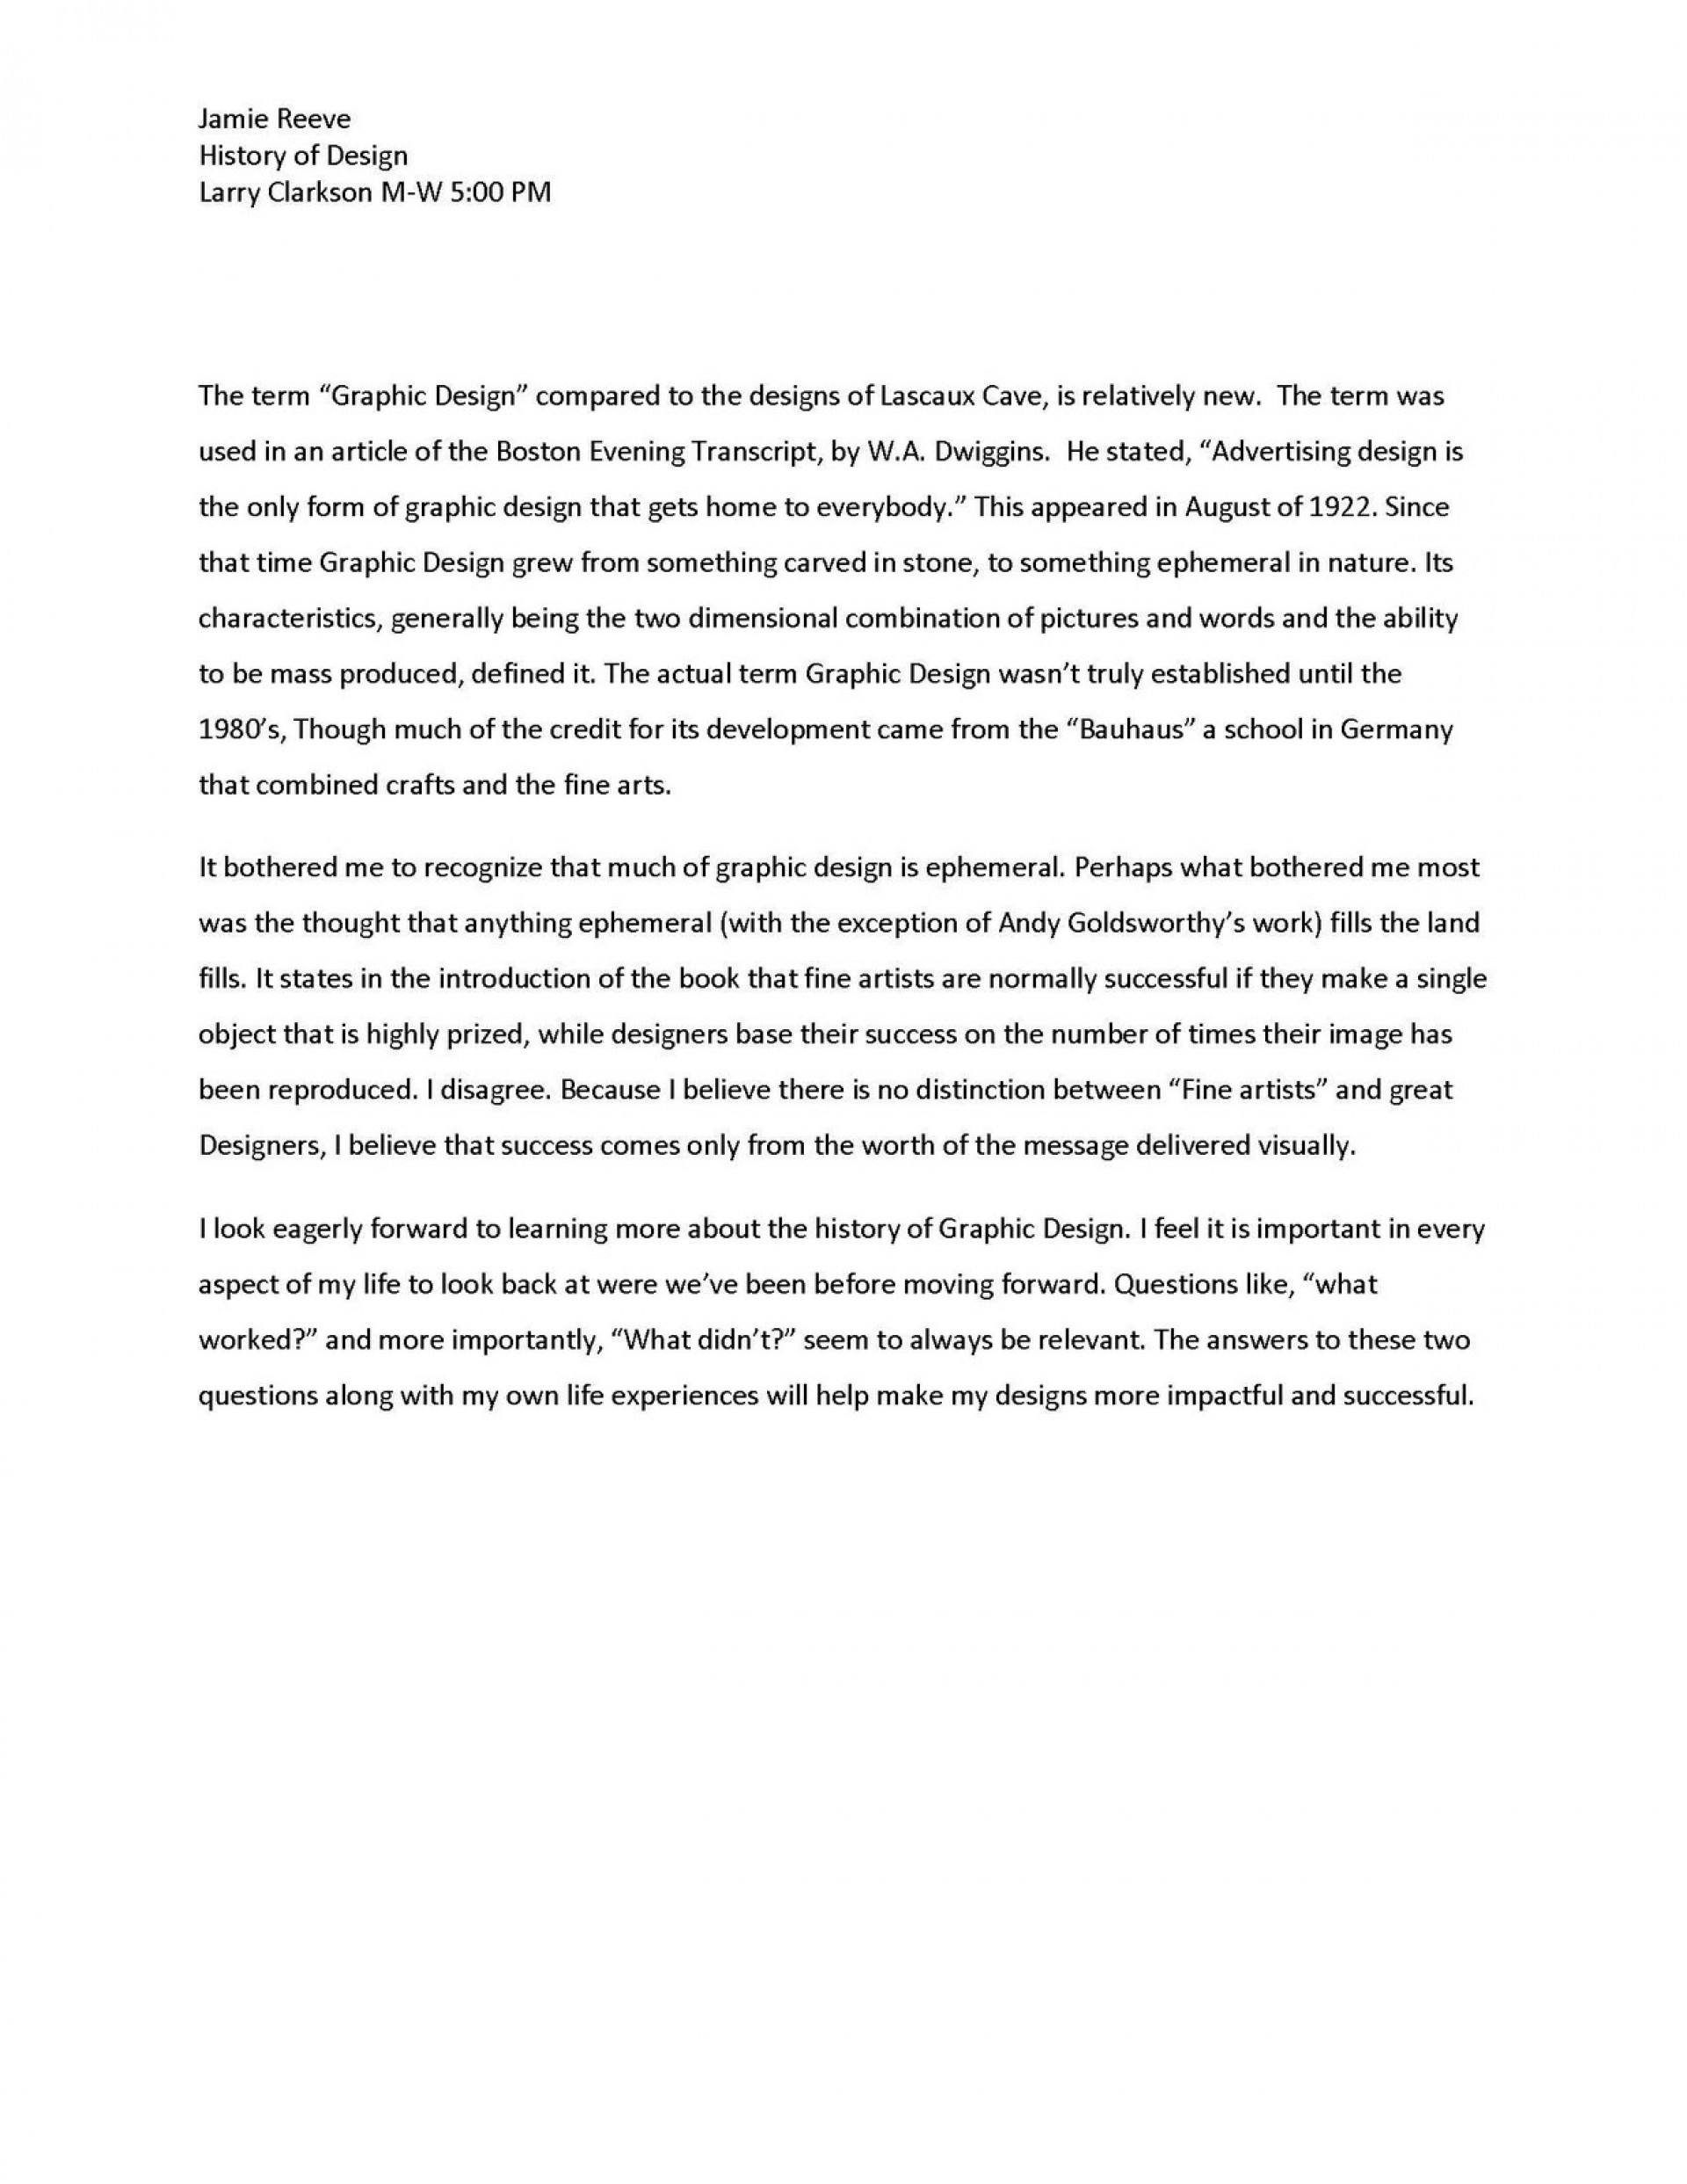 015 Essay Example For Me Essay252b1252bdesign252bhistory Page 2 Phenomenal Titles Social Media Medical Assistant Medicine 1920